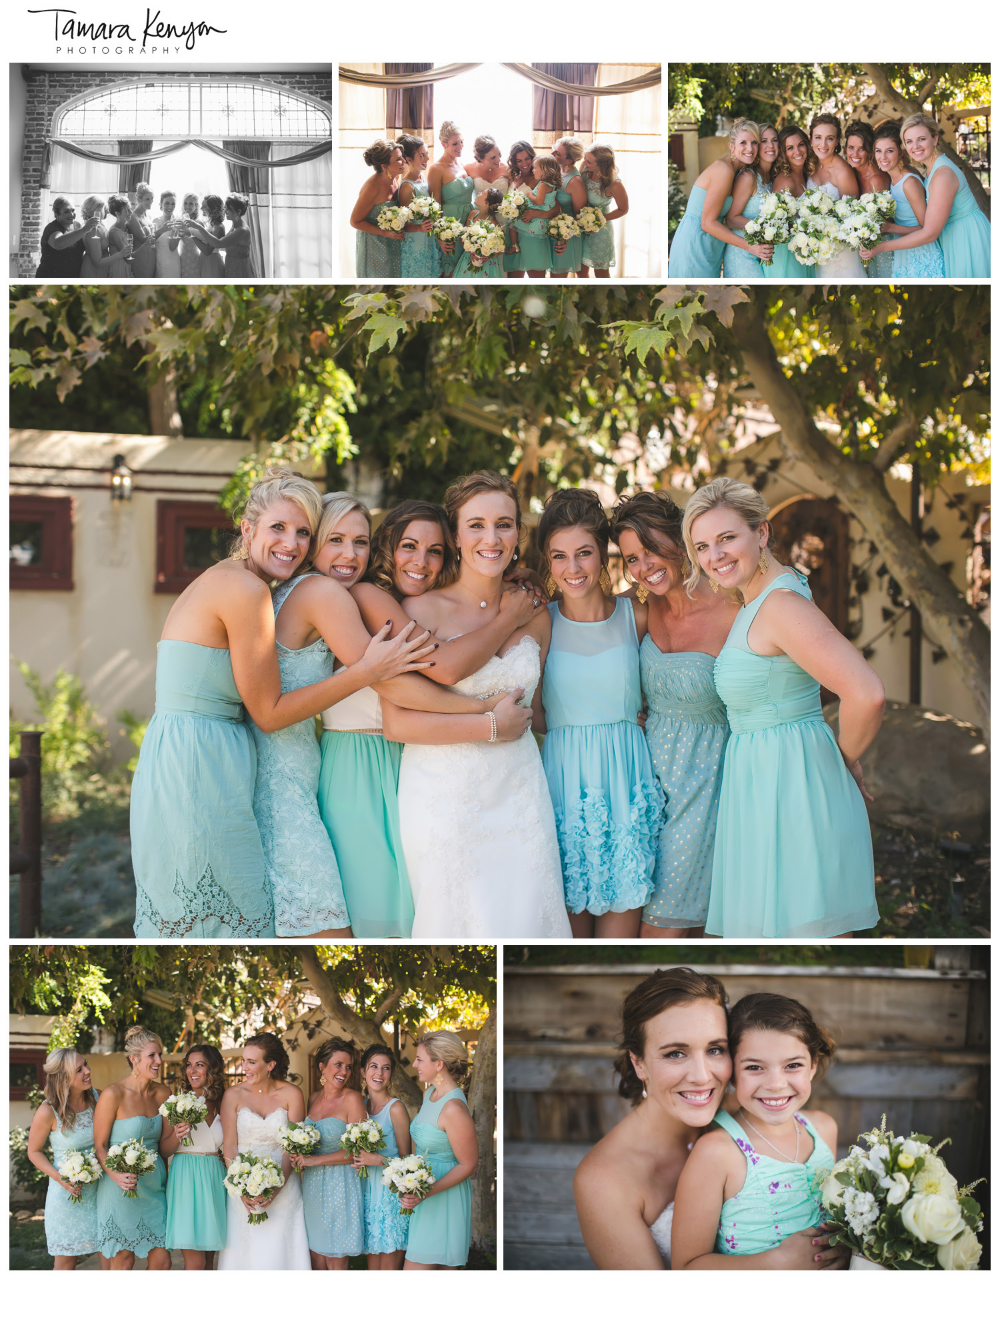 Large_bridal_party_bridesmaids_teal_vintage_idaho_wedding